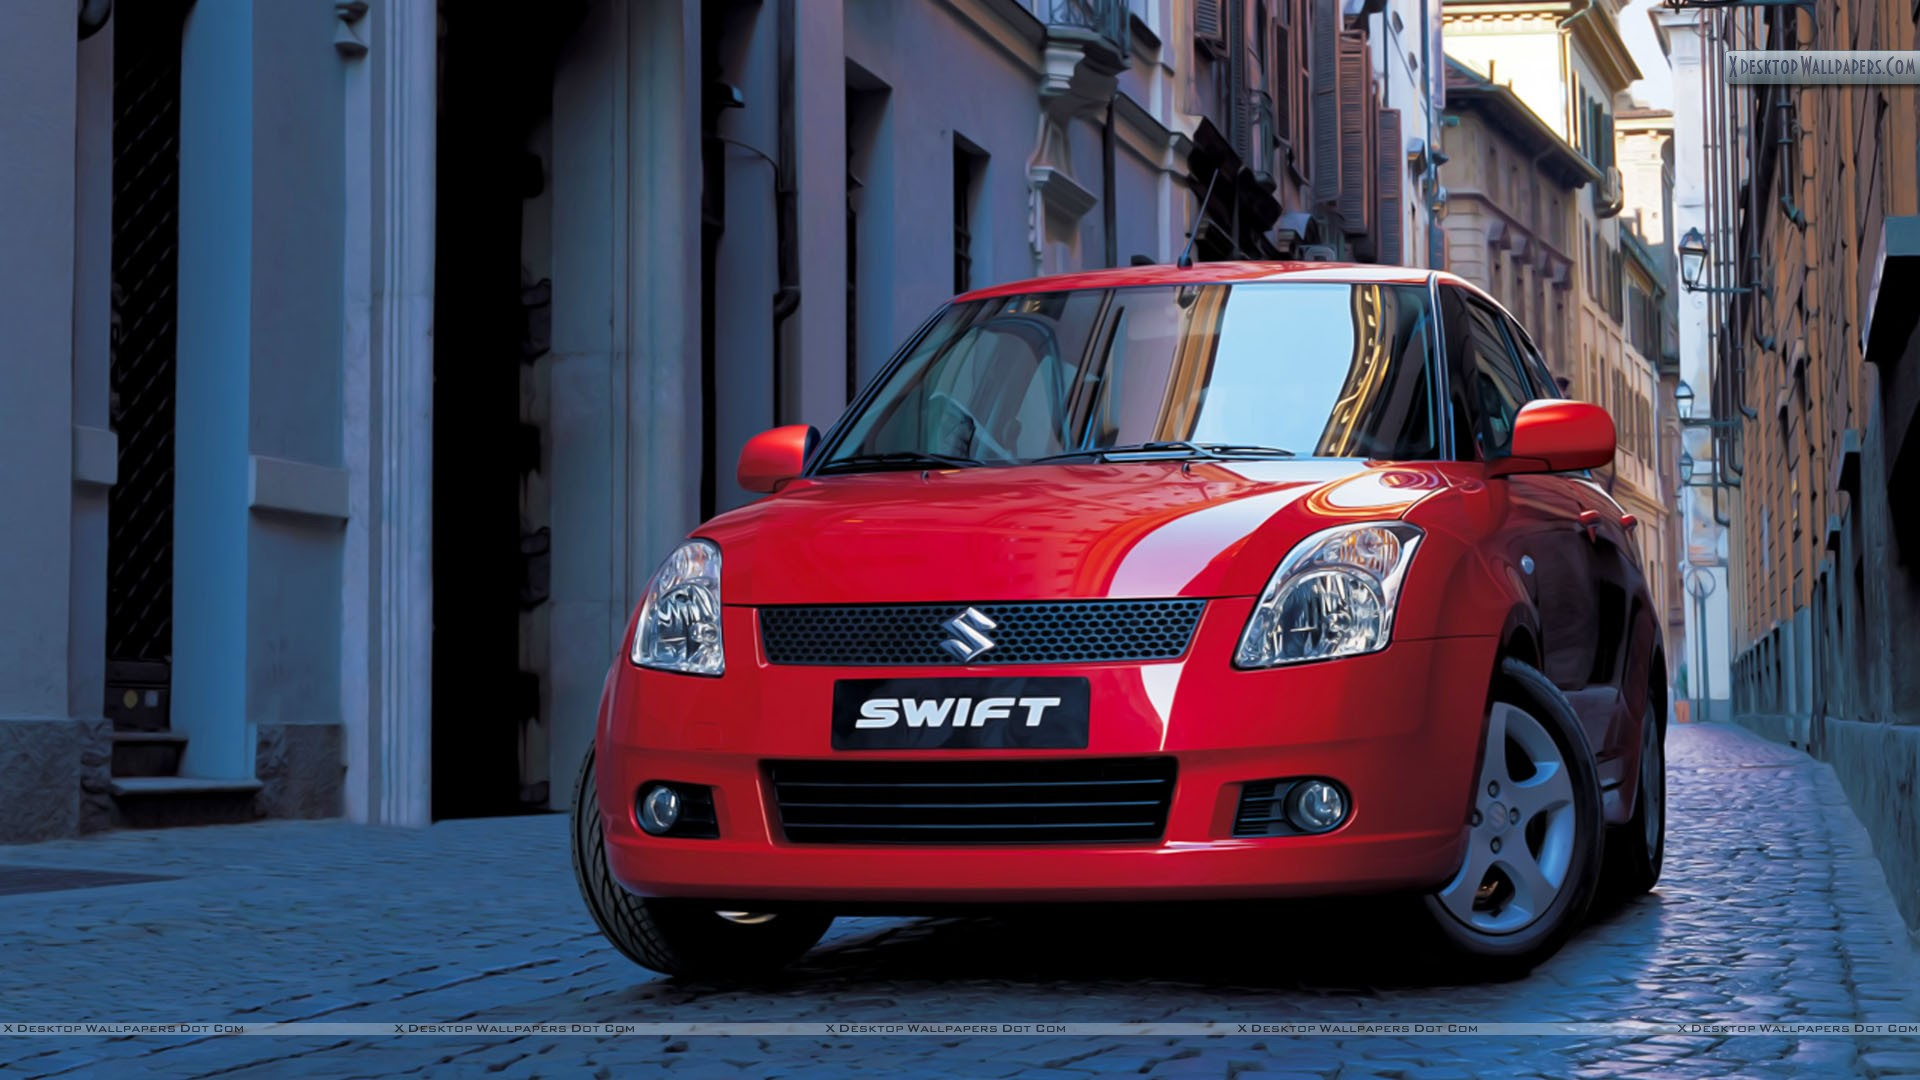 Suzuki Swift Wallpapers Photos Images In Hd